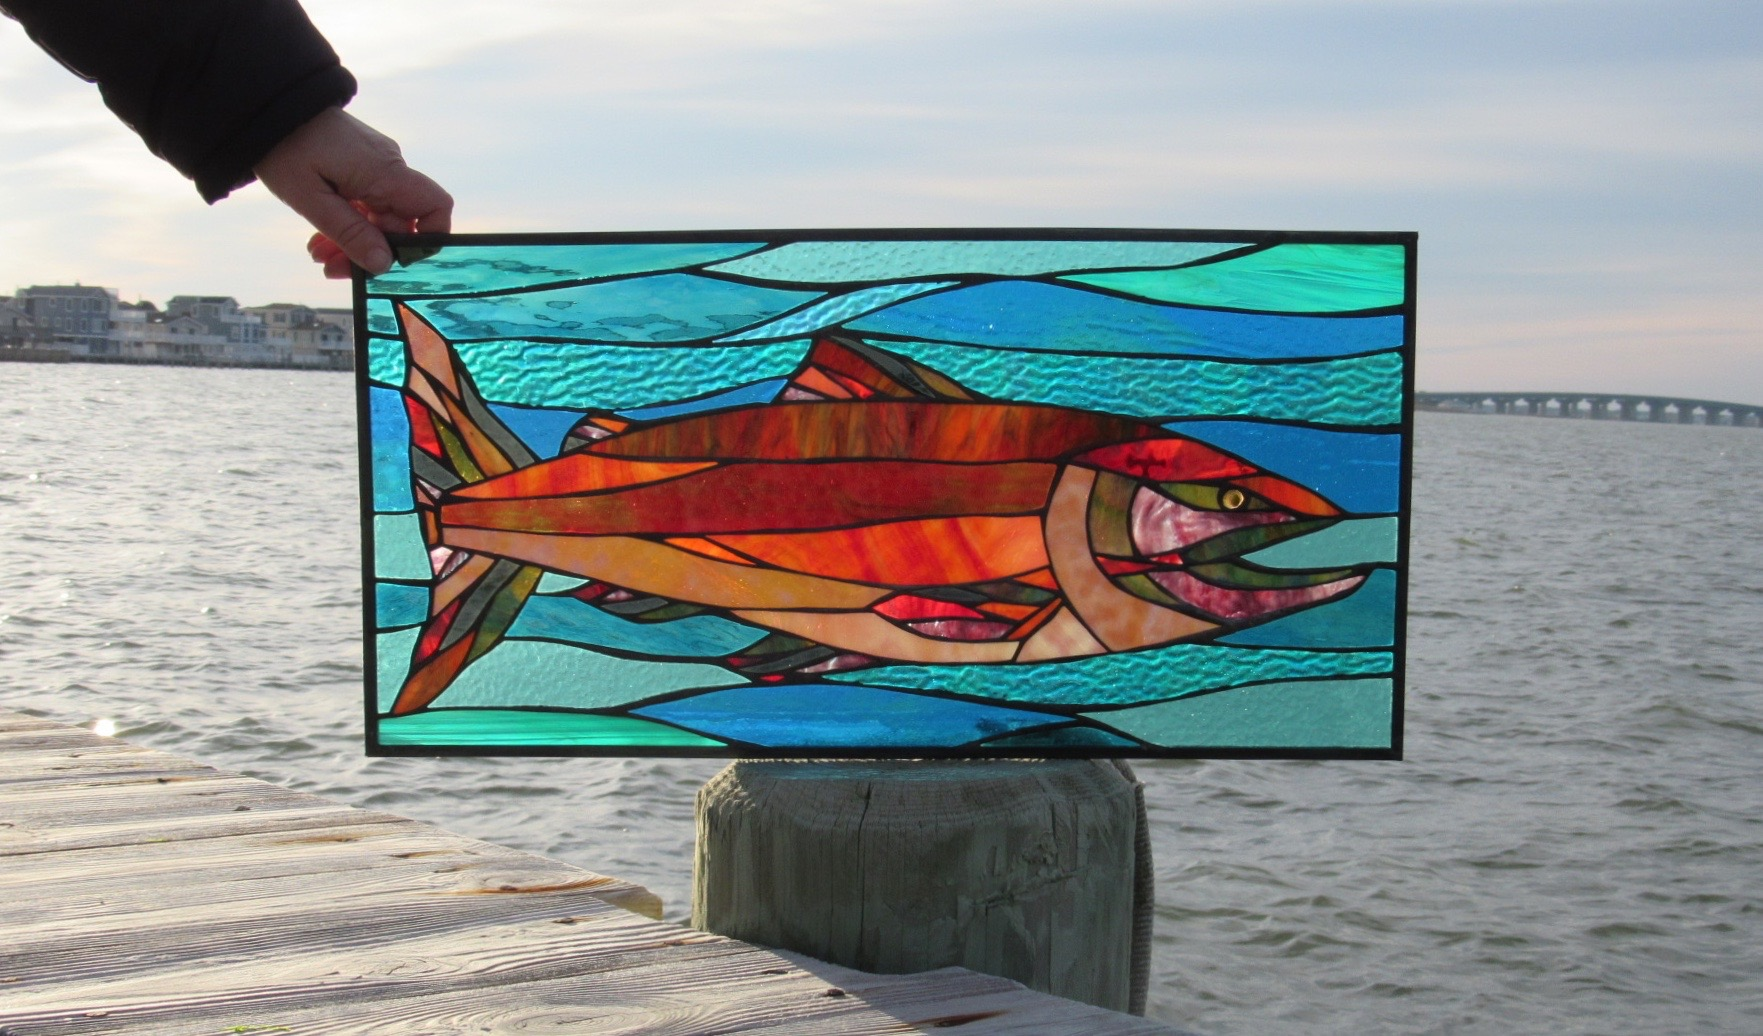 We always bring one of a kind stained glass windows to all of our art shows, the Beach Haven Art Walk is no exception! This salmon window is one of our favorite custom pieces- you'll want to order custom stained glass too when you see what we have at the show! ;-)